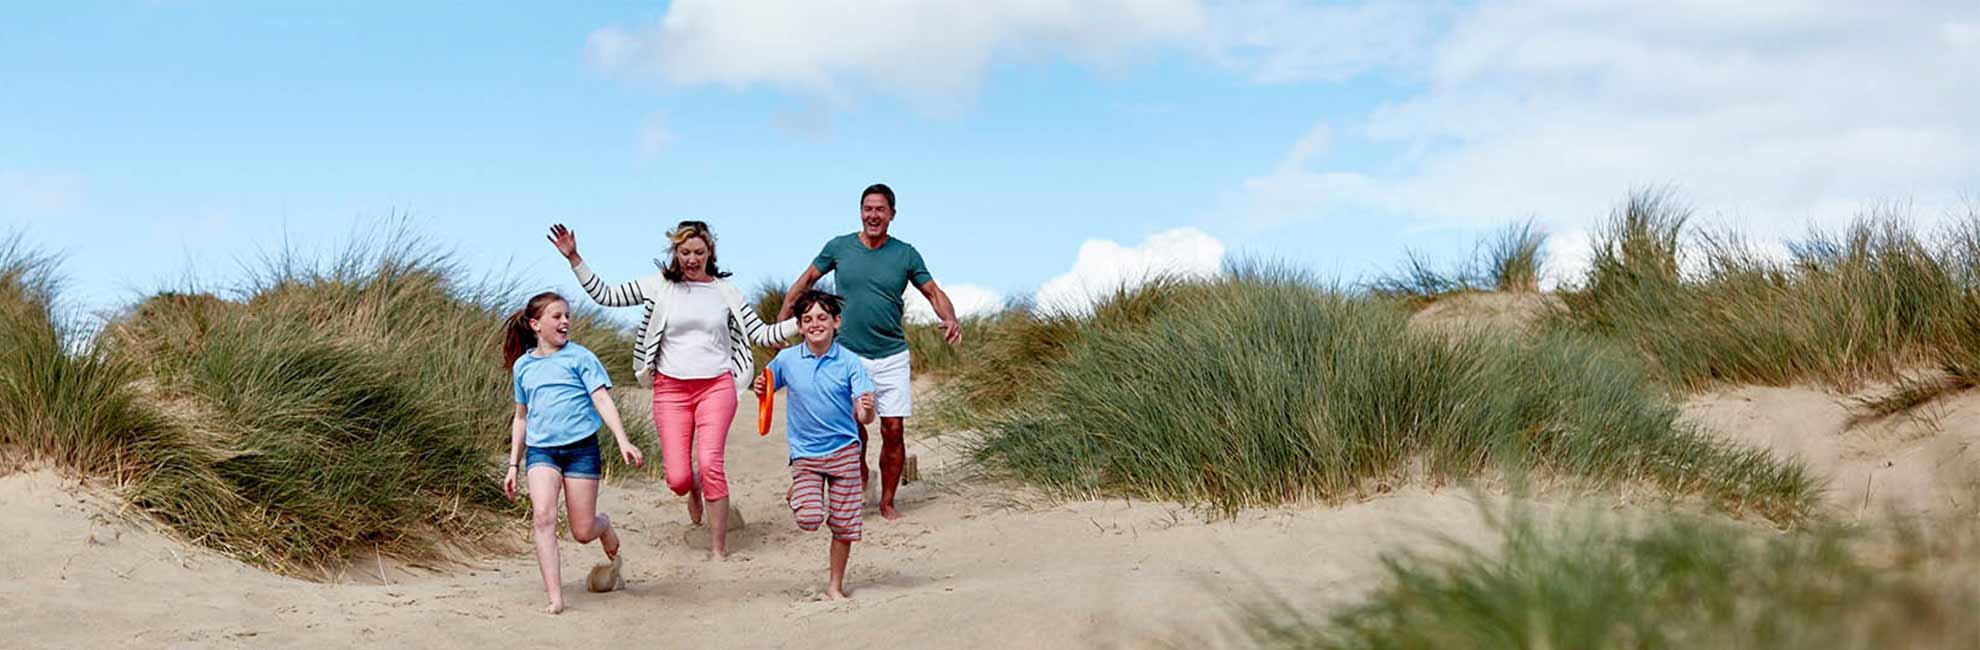 A family running to the beach through grassy sand dunes